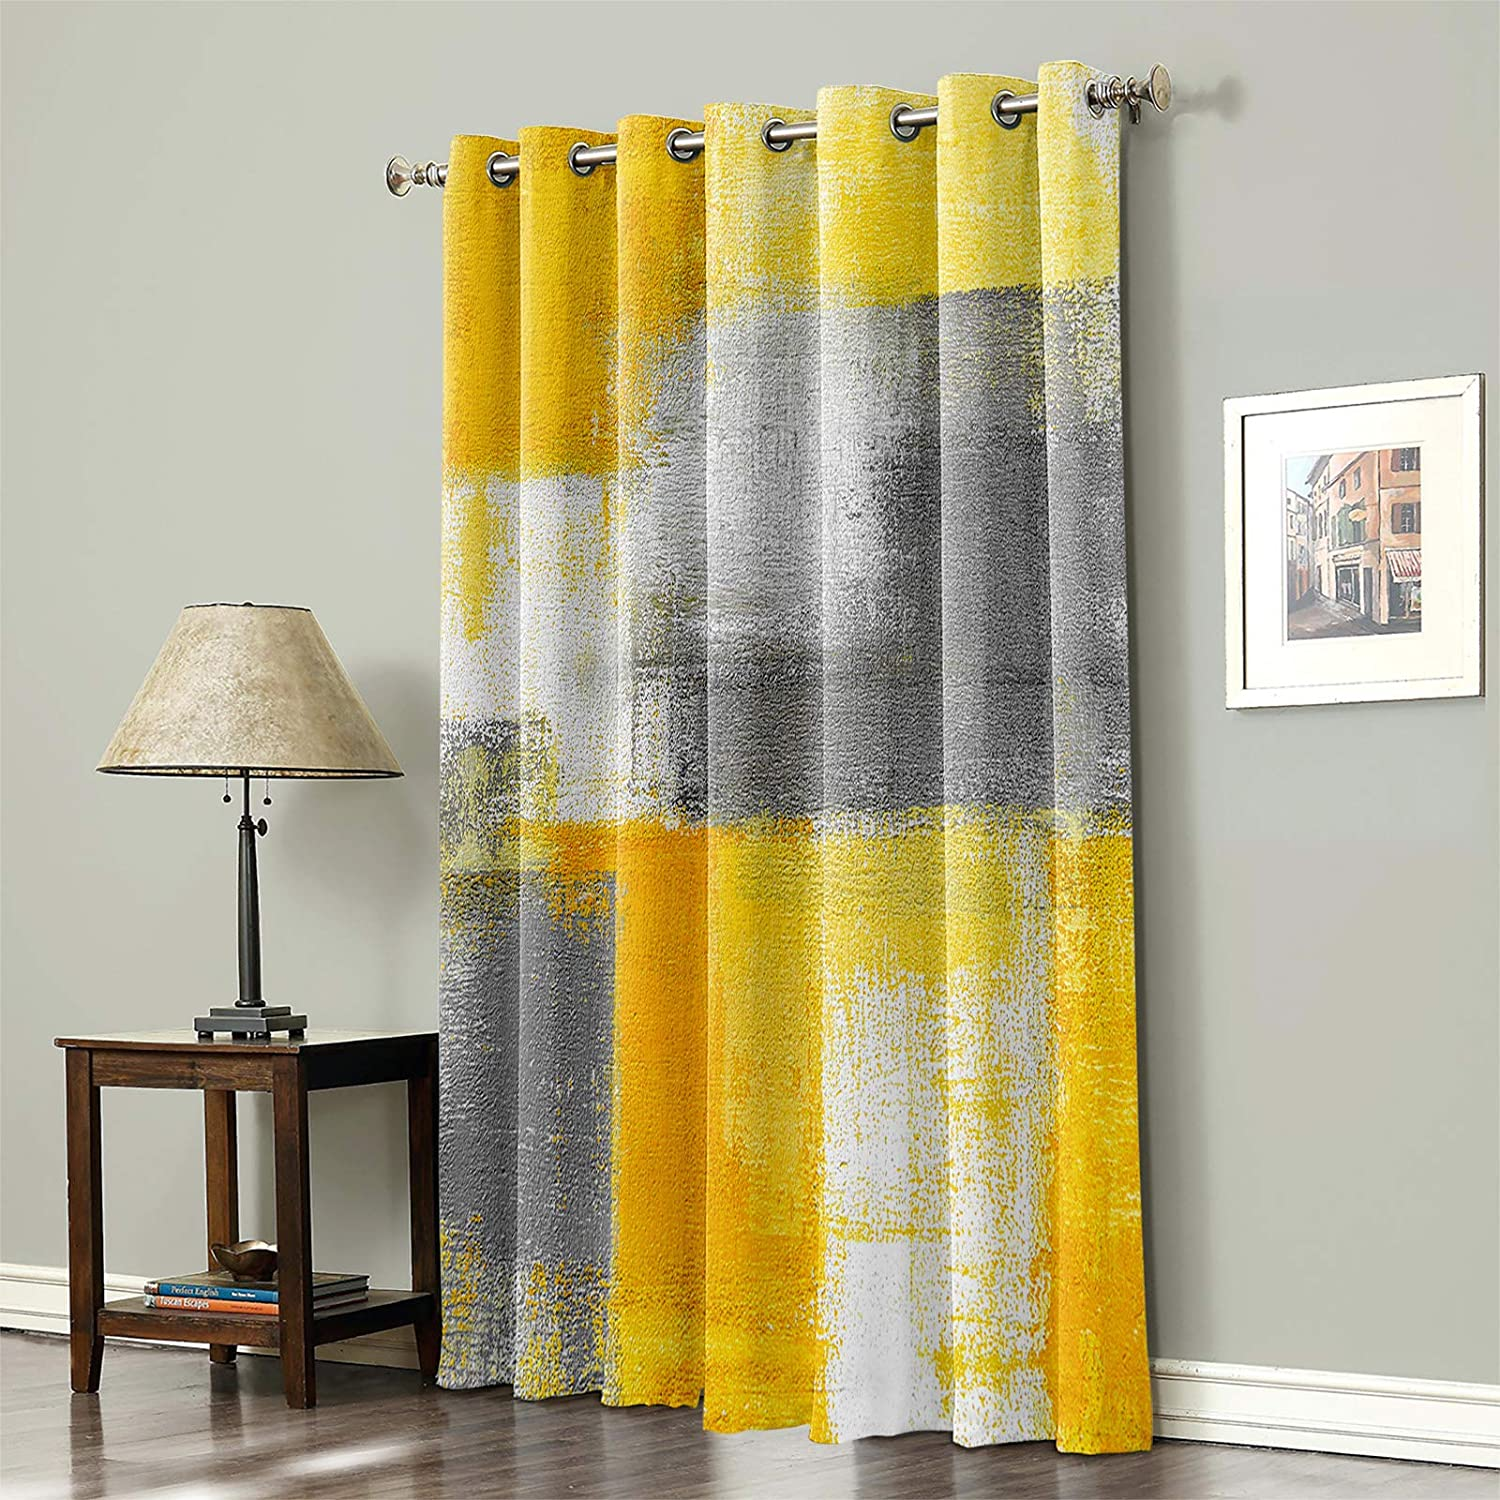 Blackout Curtain Thermal Insulated Gromme Spasm price Window 1 Bargain sale Panel